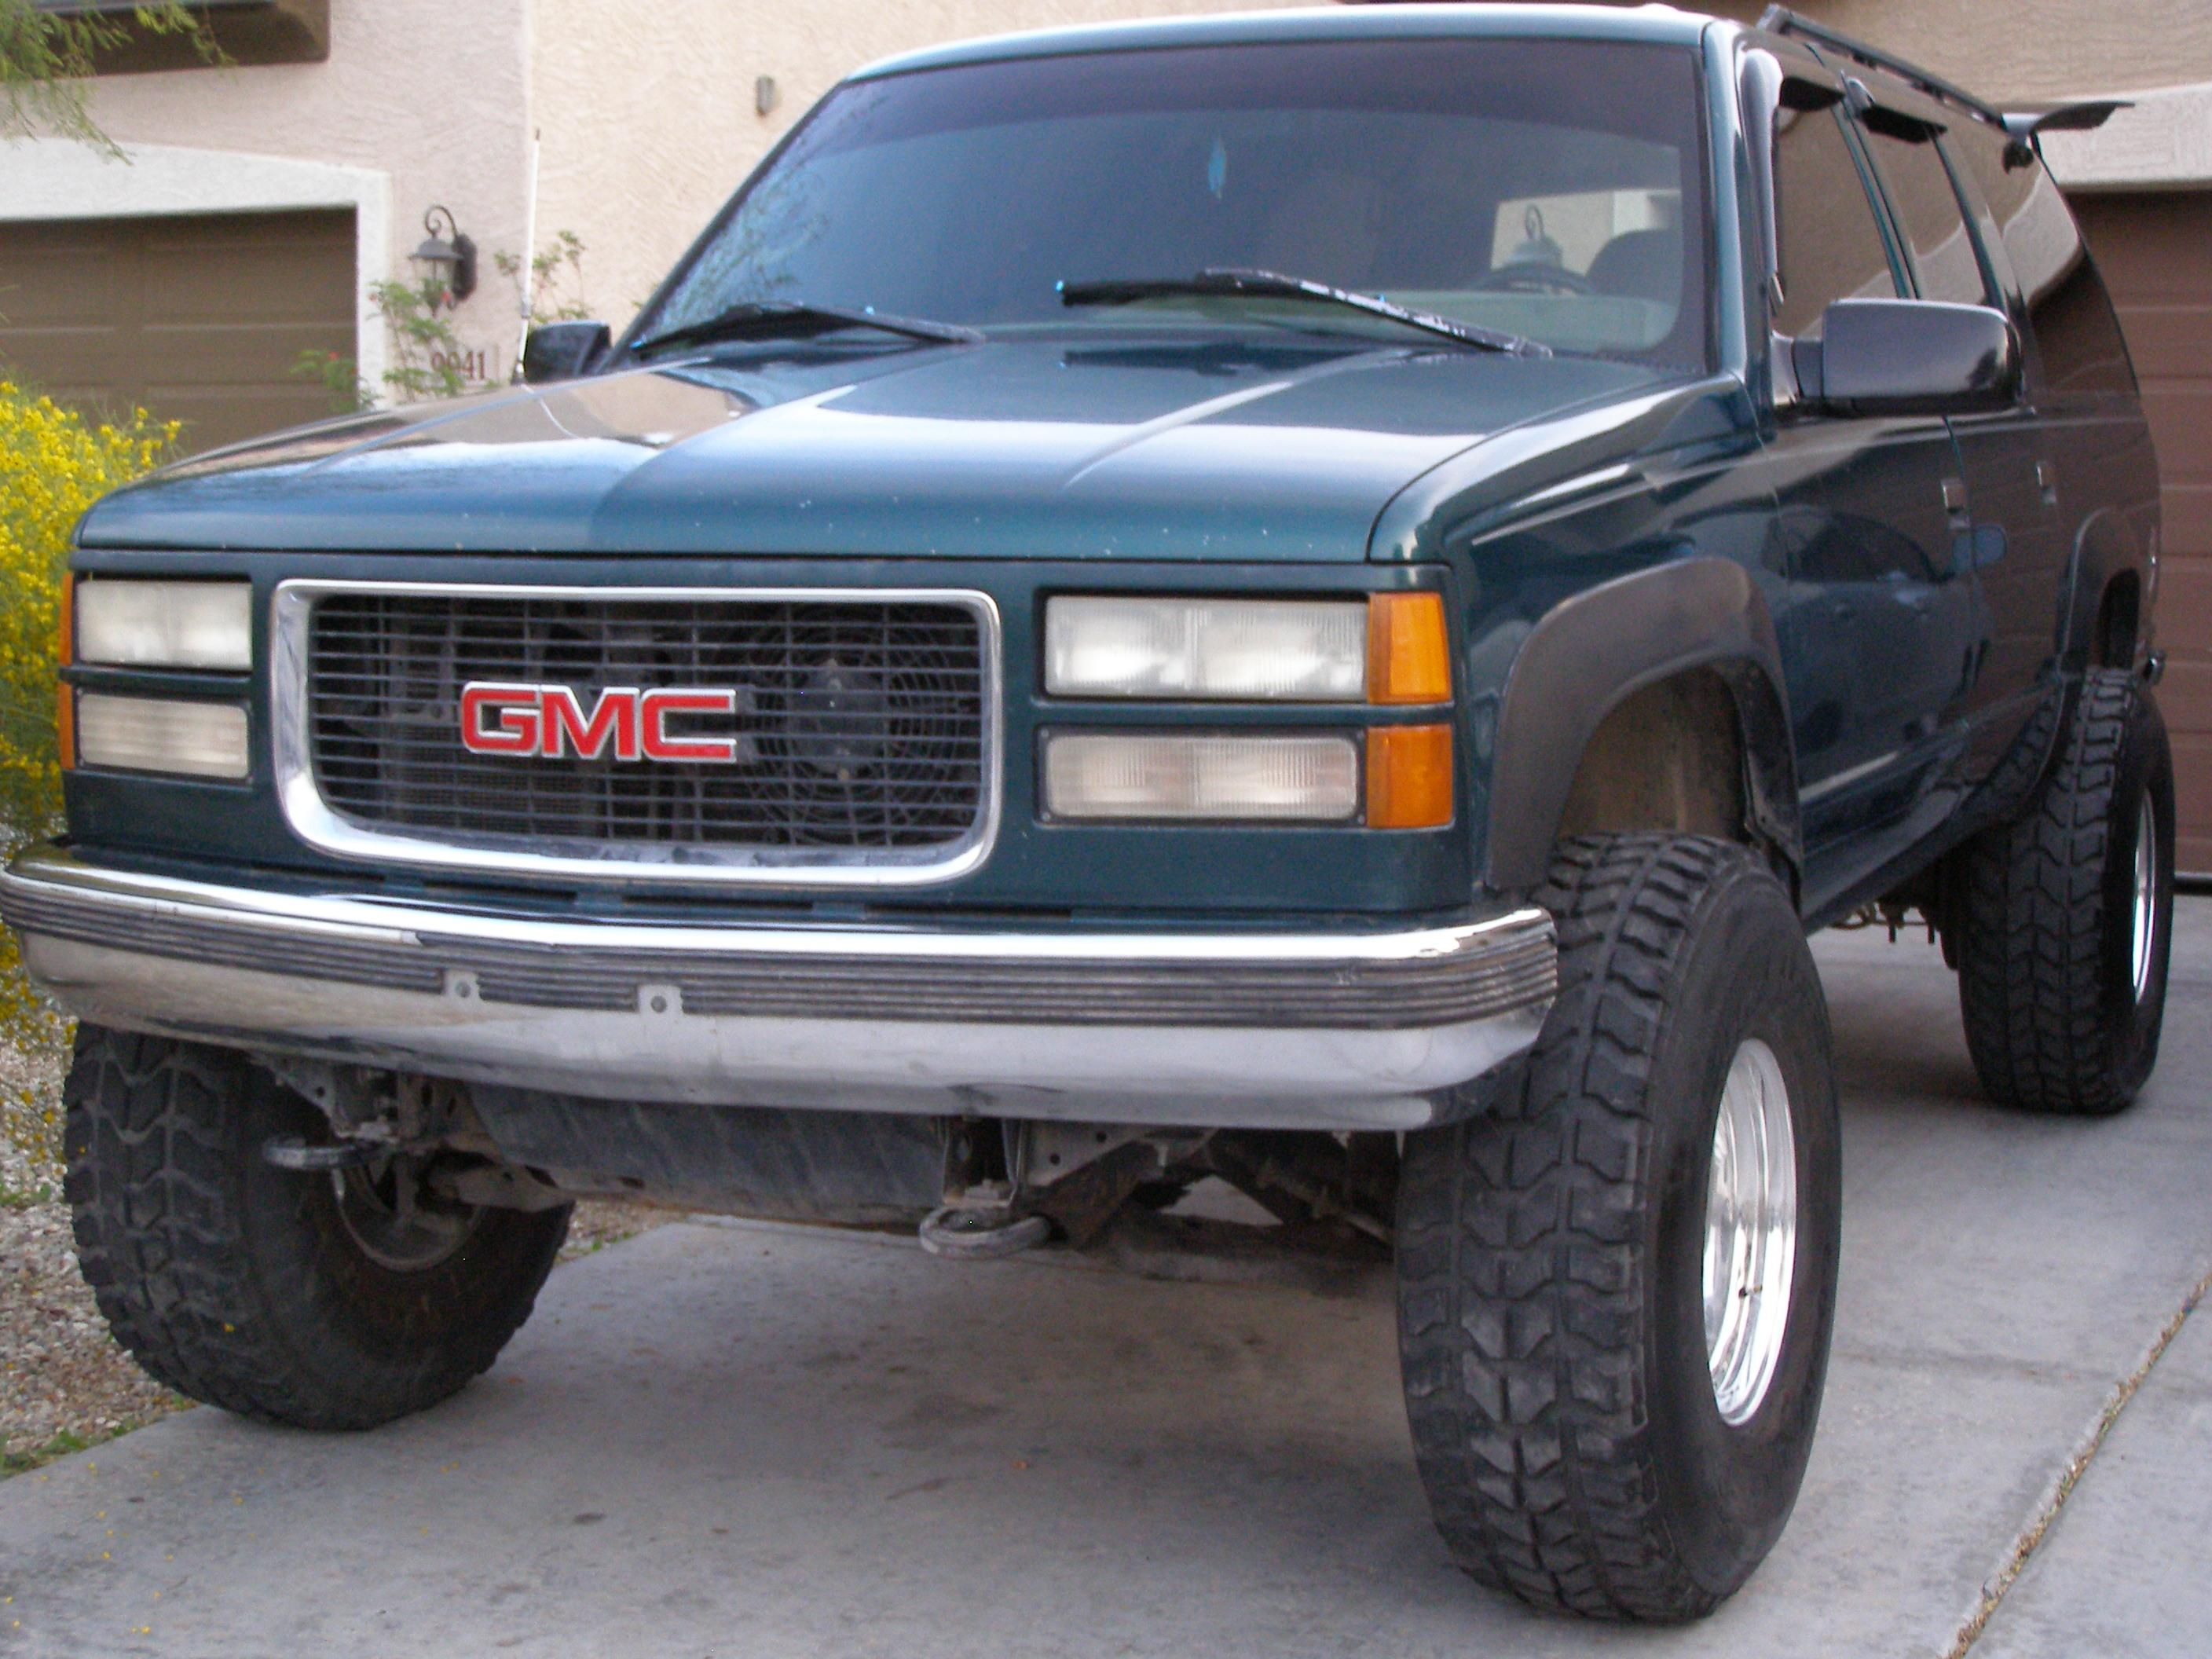 22Dirty 1996 GMC Suburban 1500 Specs, Photos, Modification